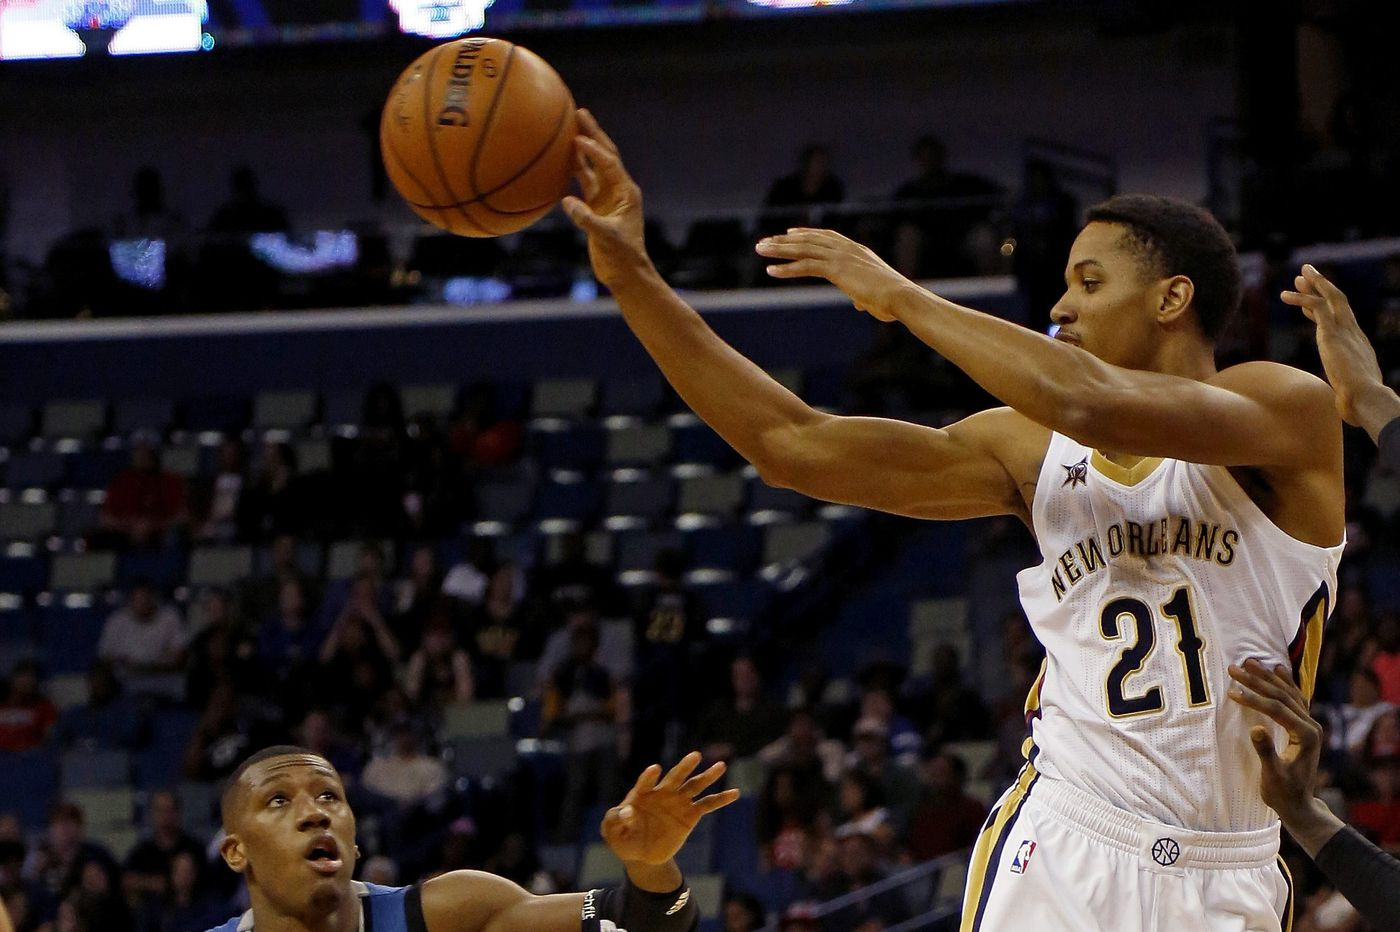 Sixers sign swingman Anthony Brown to training camp roster